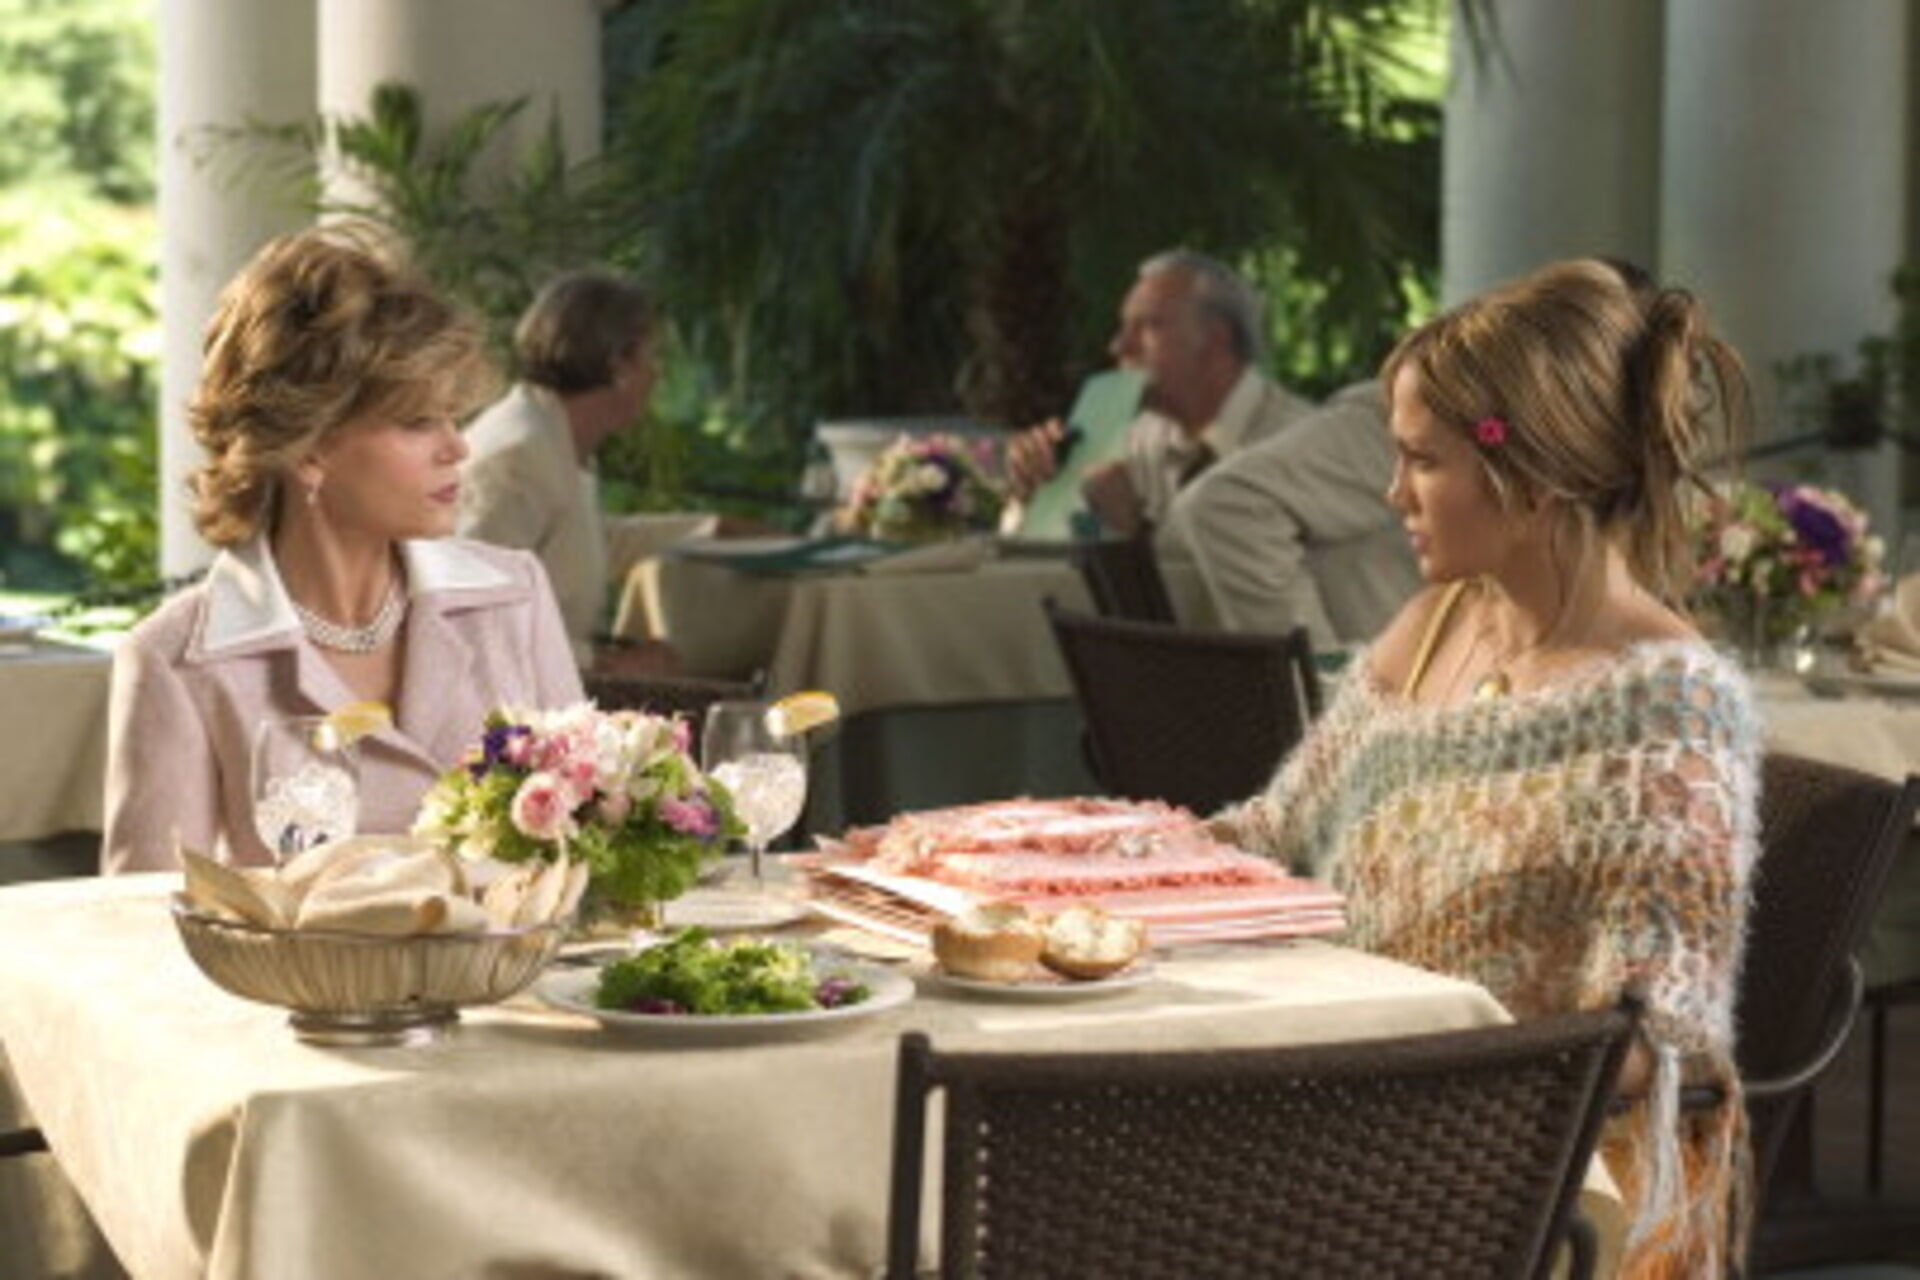 Monster-in-law - Image 9